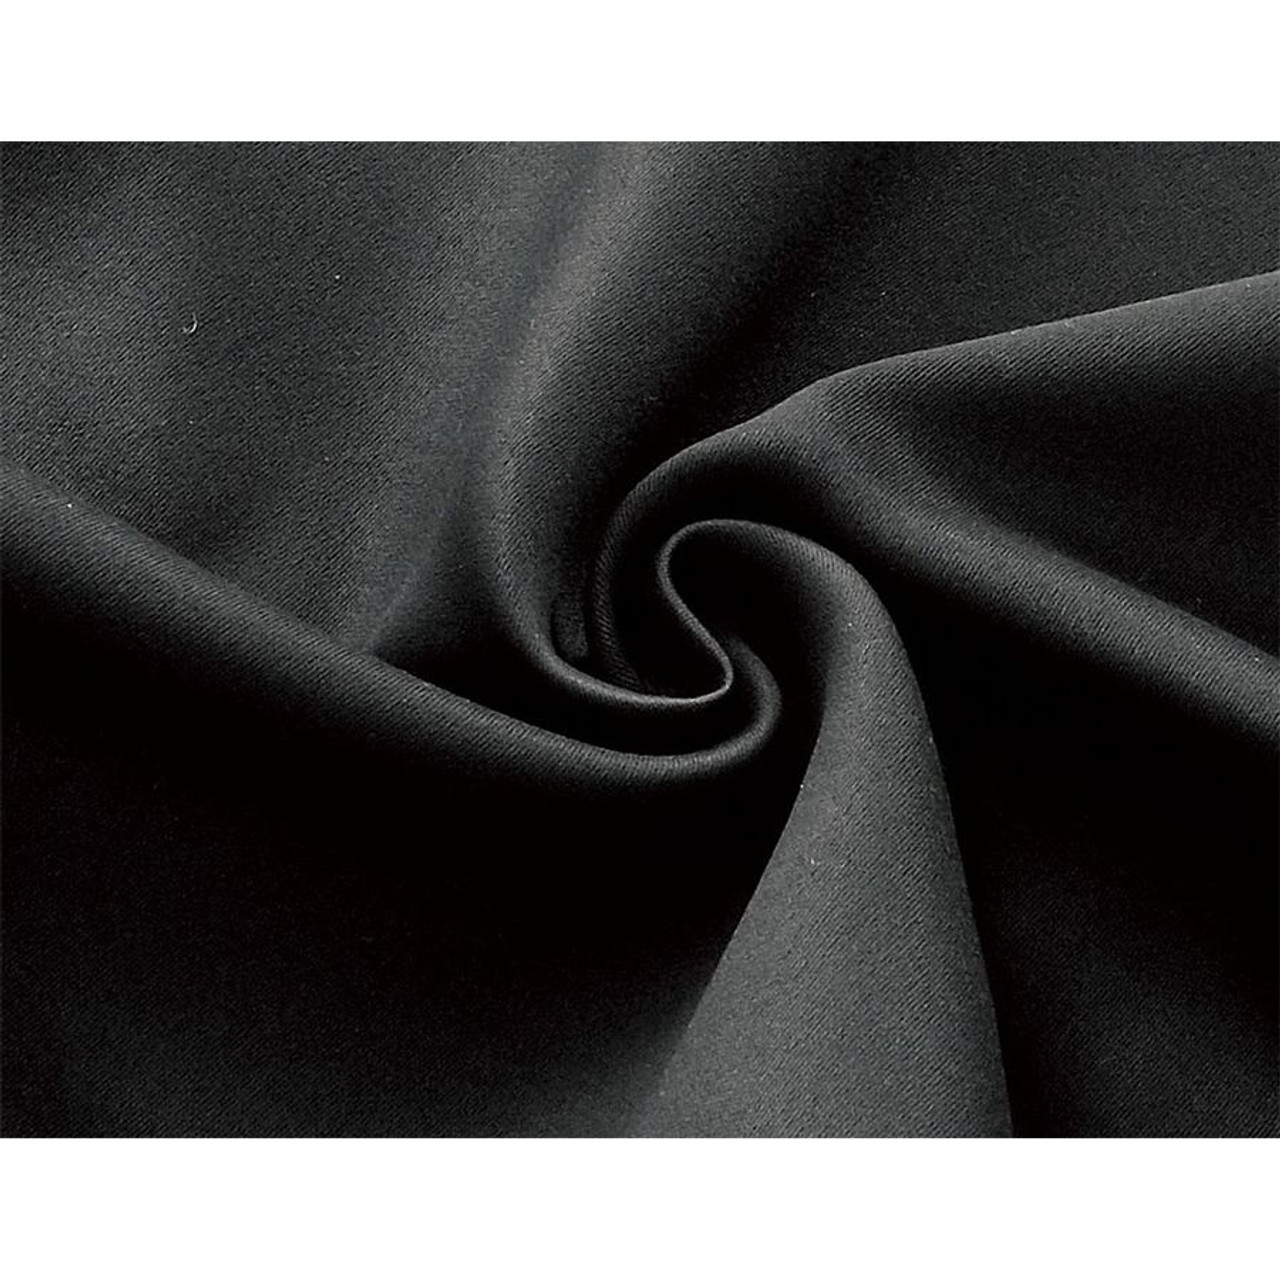 blackout room divider curtain panel thermal insulated black color